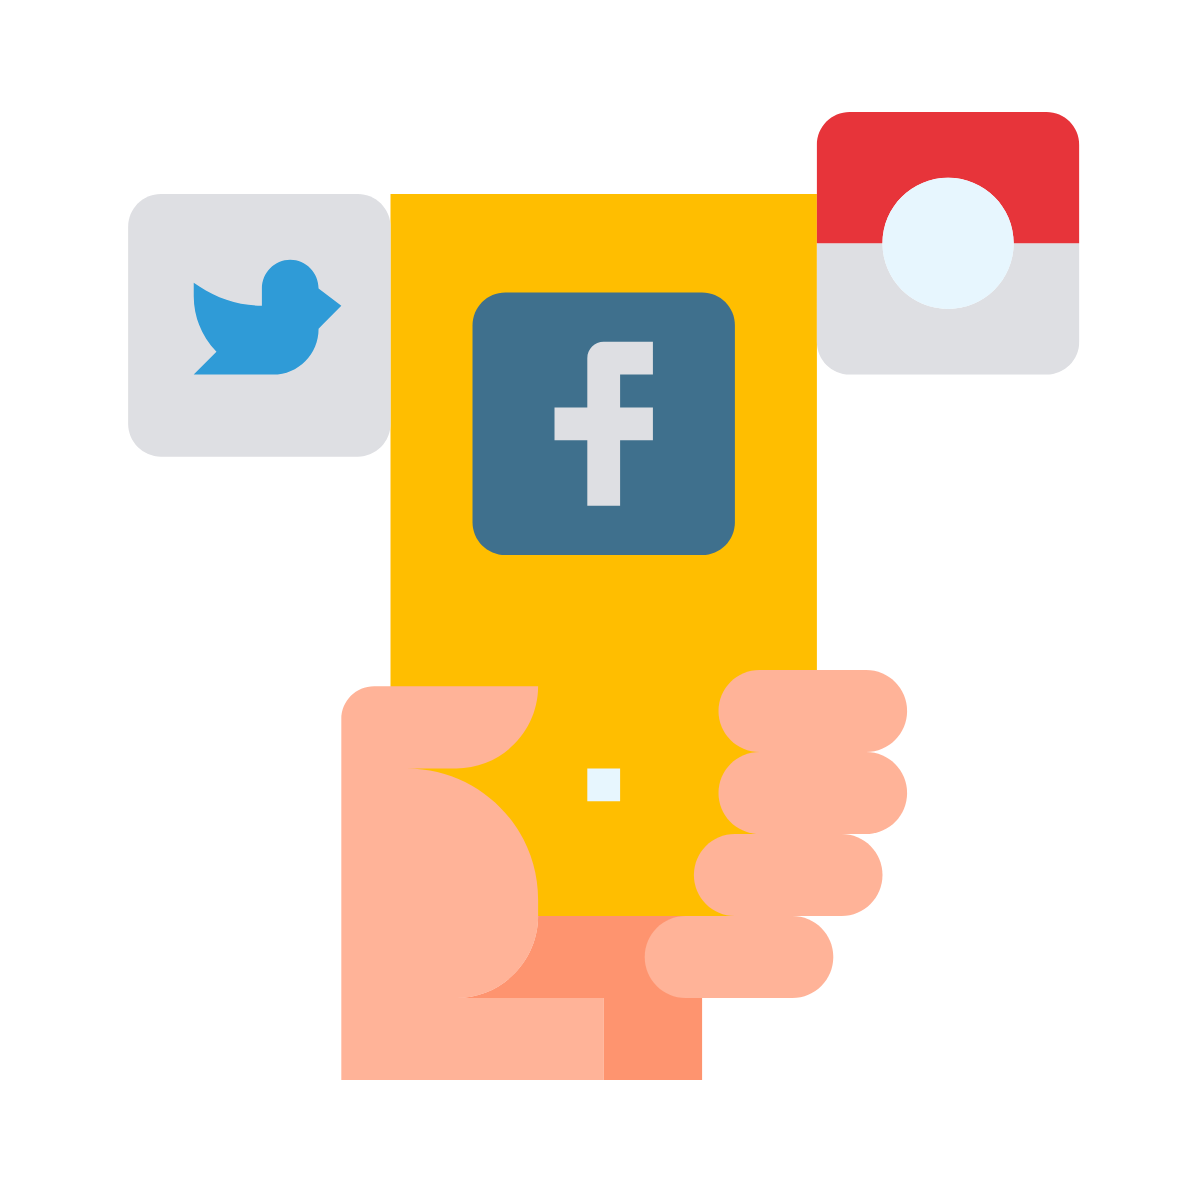 social media executive job icon